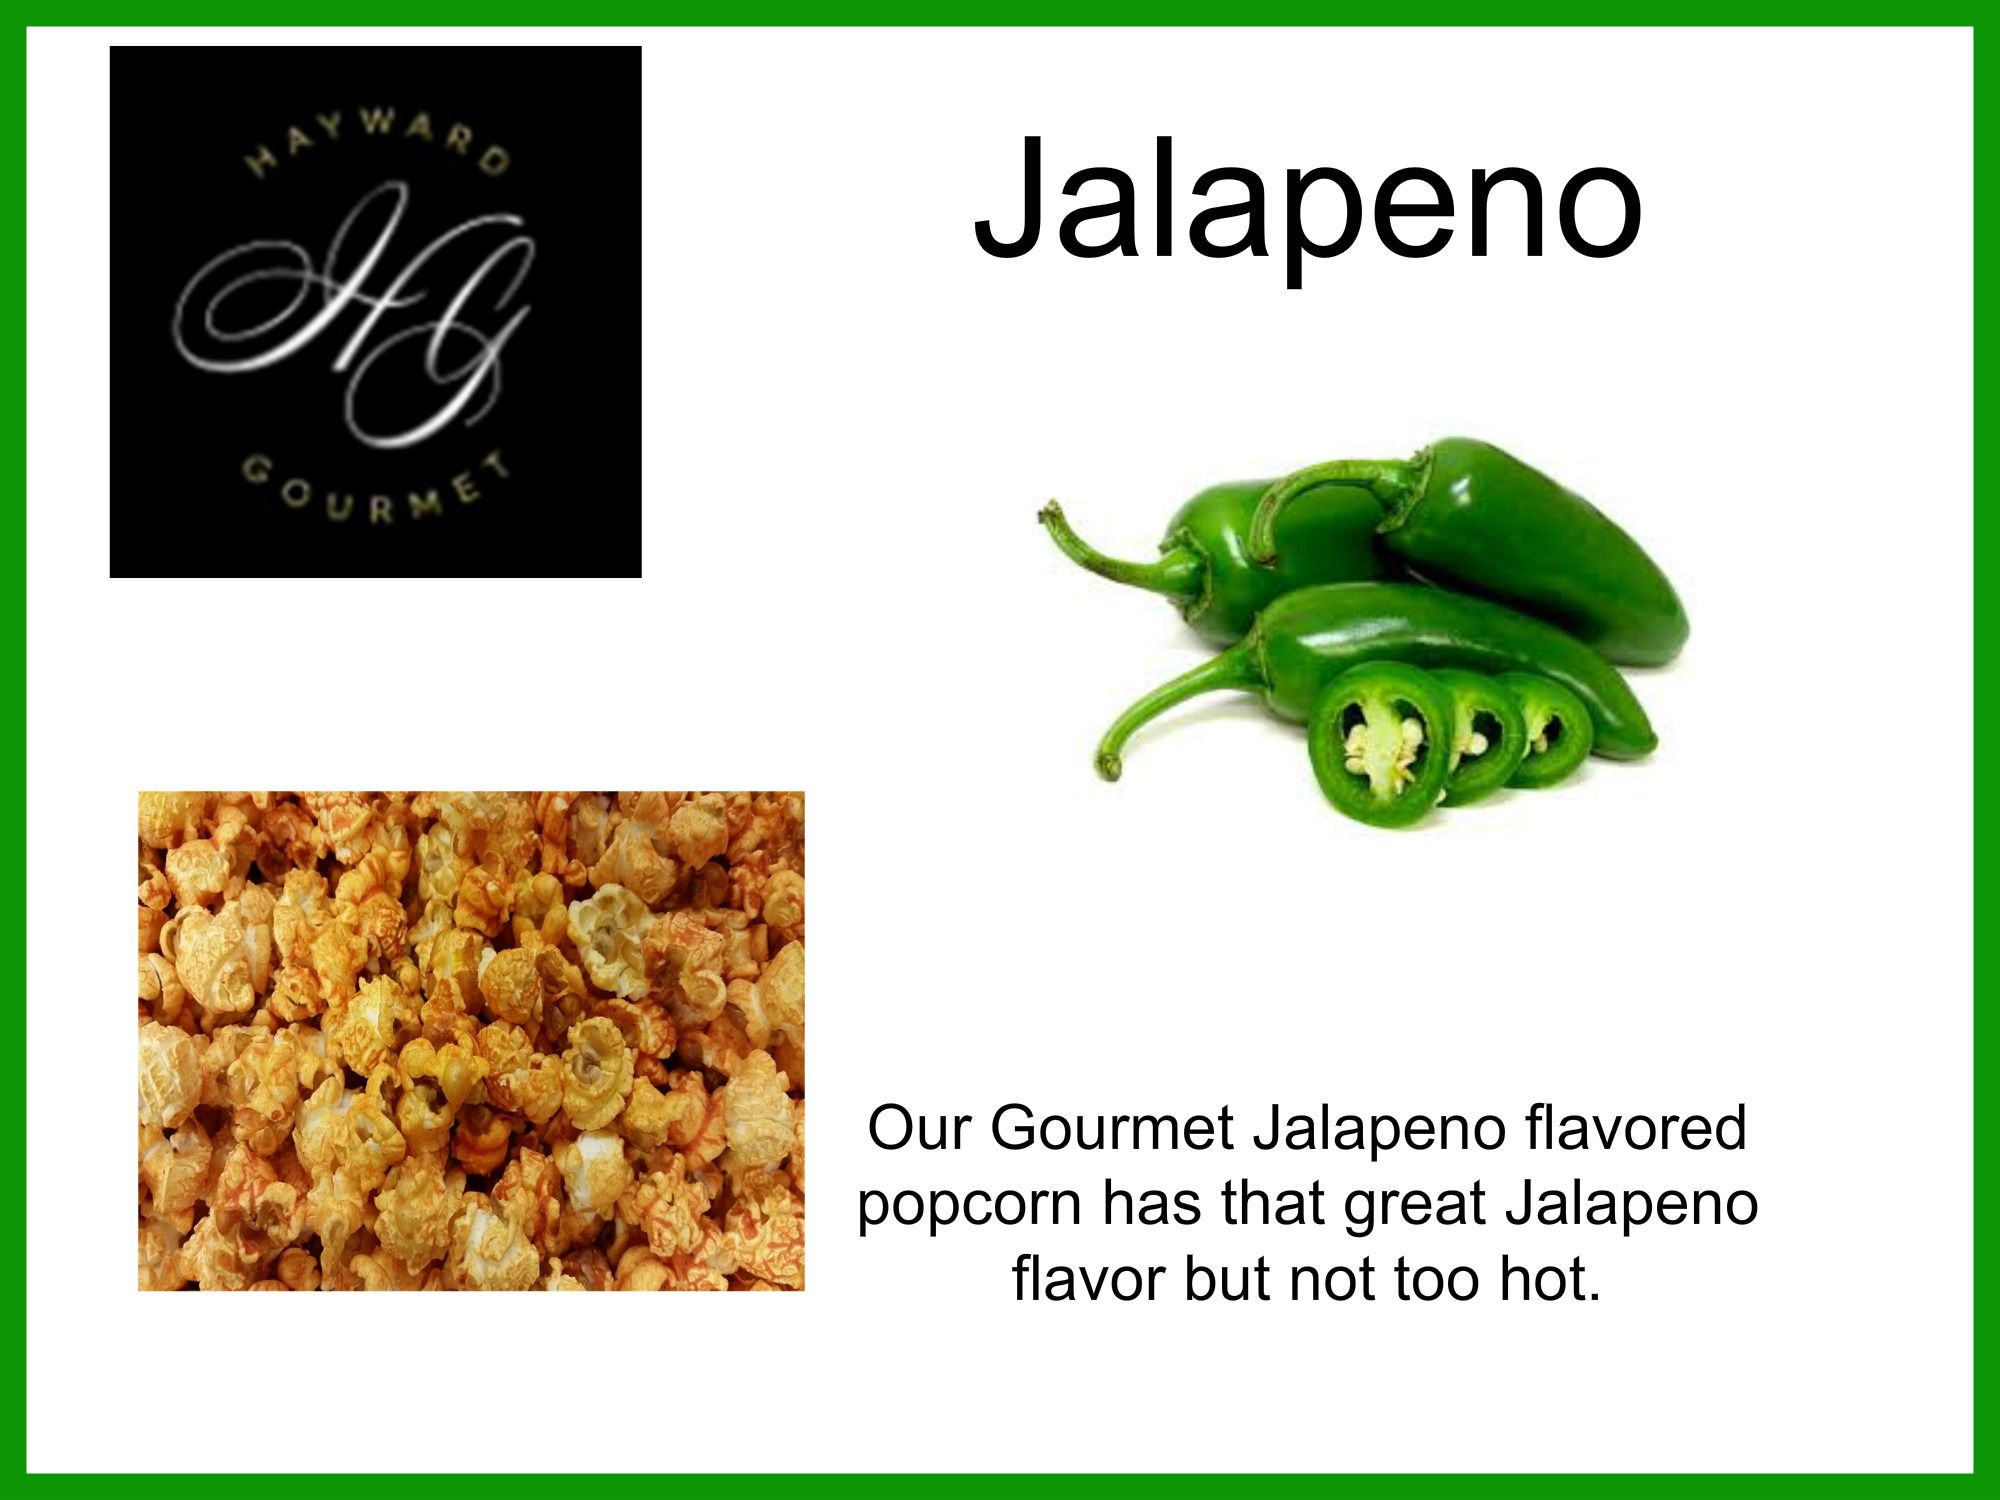 Our Gourmet Jalapeno flavored popcorn has that great Jalapeno flavor but not too hot.